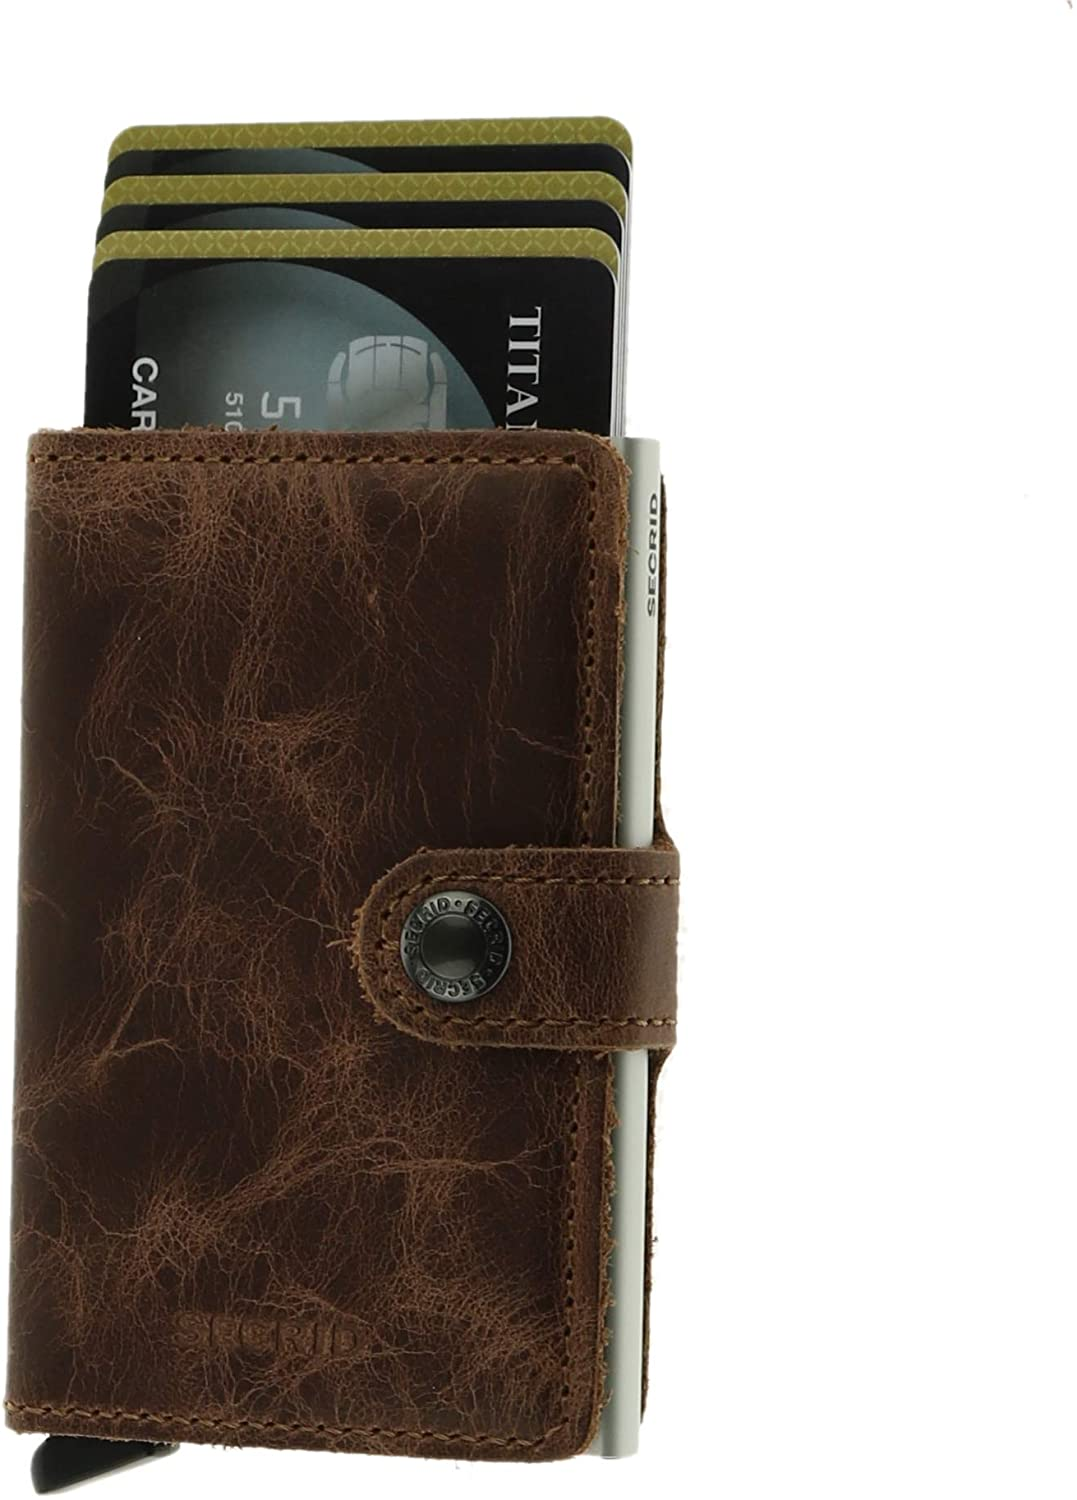 Secrid - Mini Wallet Genuine Leather RFID Safe Card Case for max 12 Cards